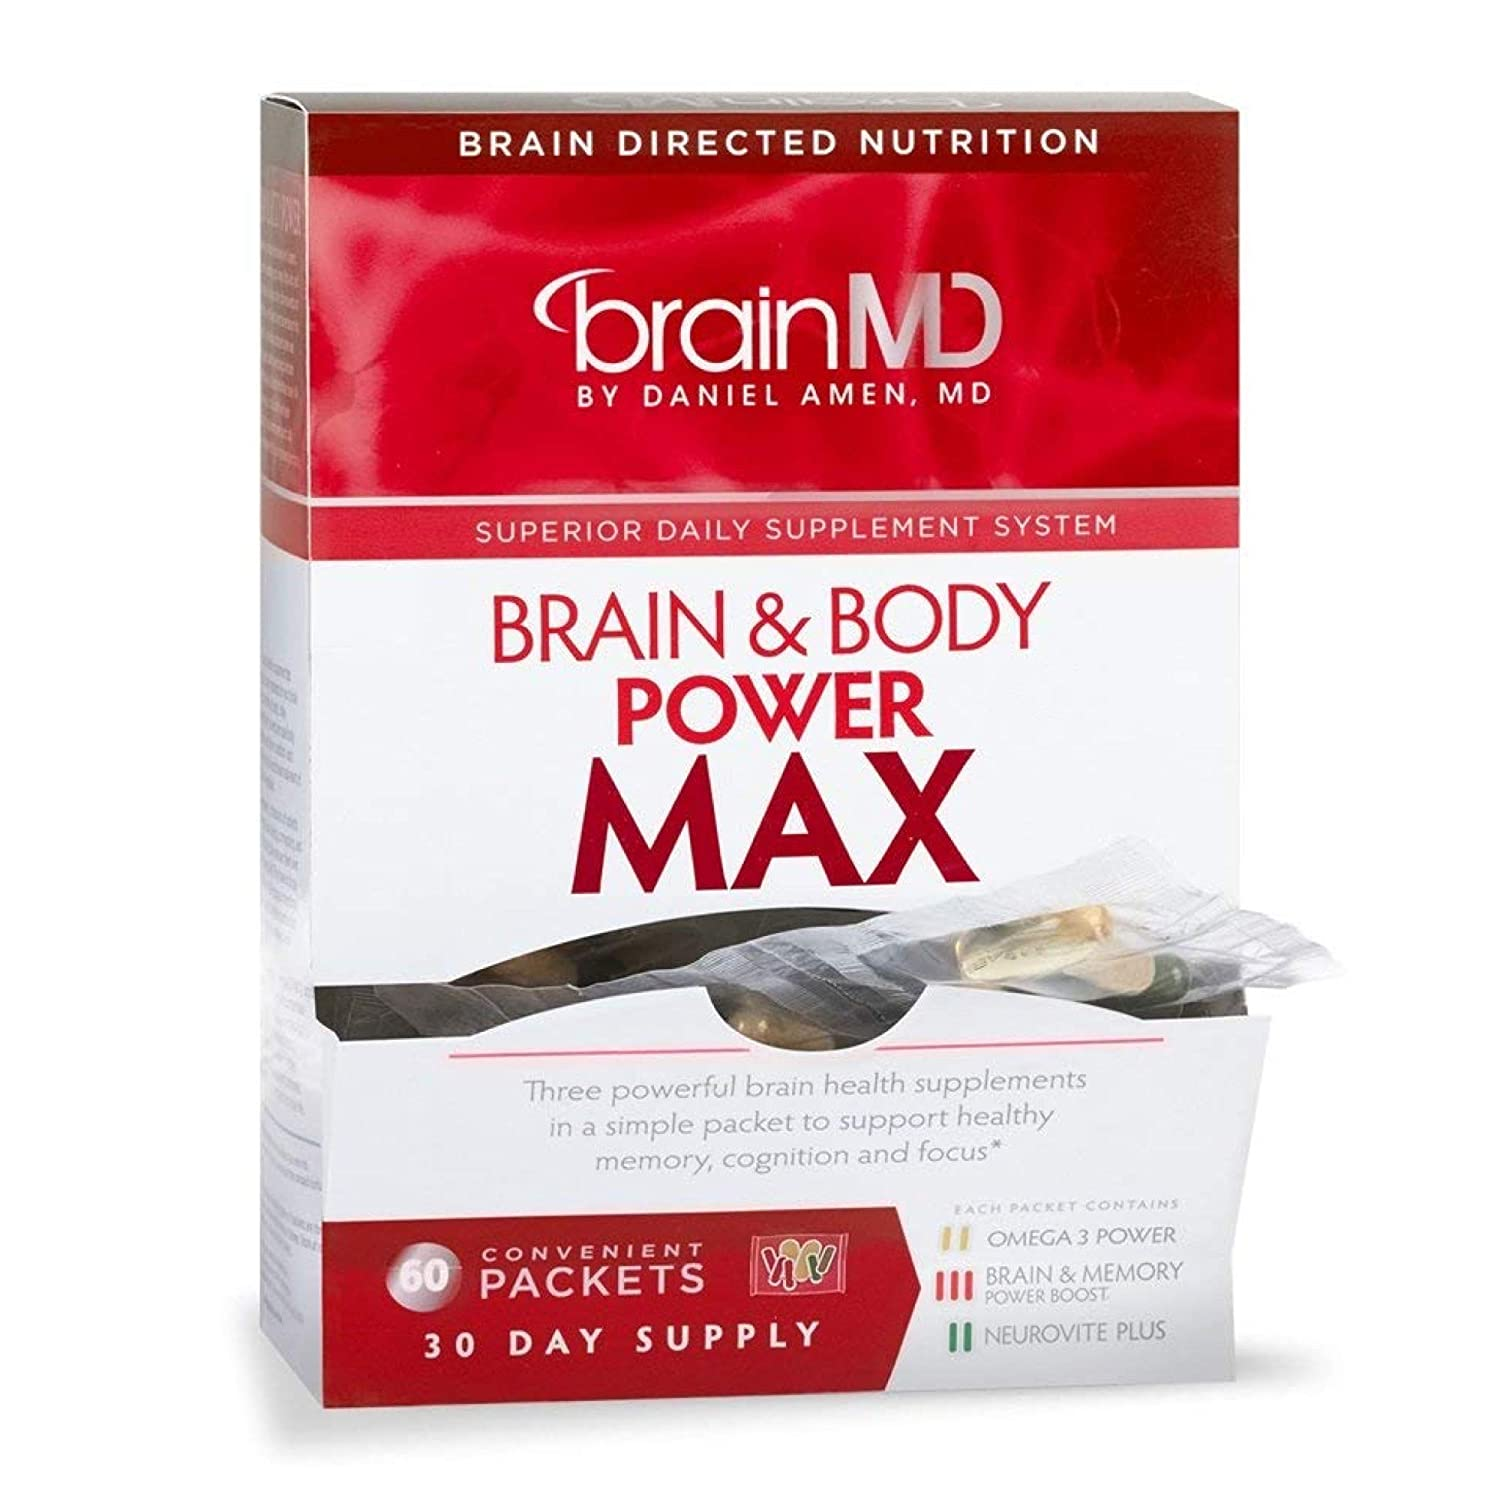 Dr. Amen brainMD Brain & Body Power Max - 420 Capsules - Complete Wellness Support Supplement, Promotes Recall & Retention, Focus, Emotional Balance & Positive Mood - 30 Day Supply